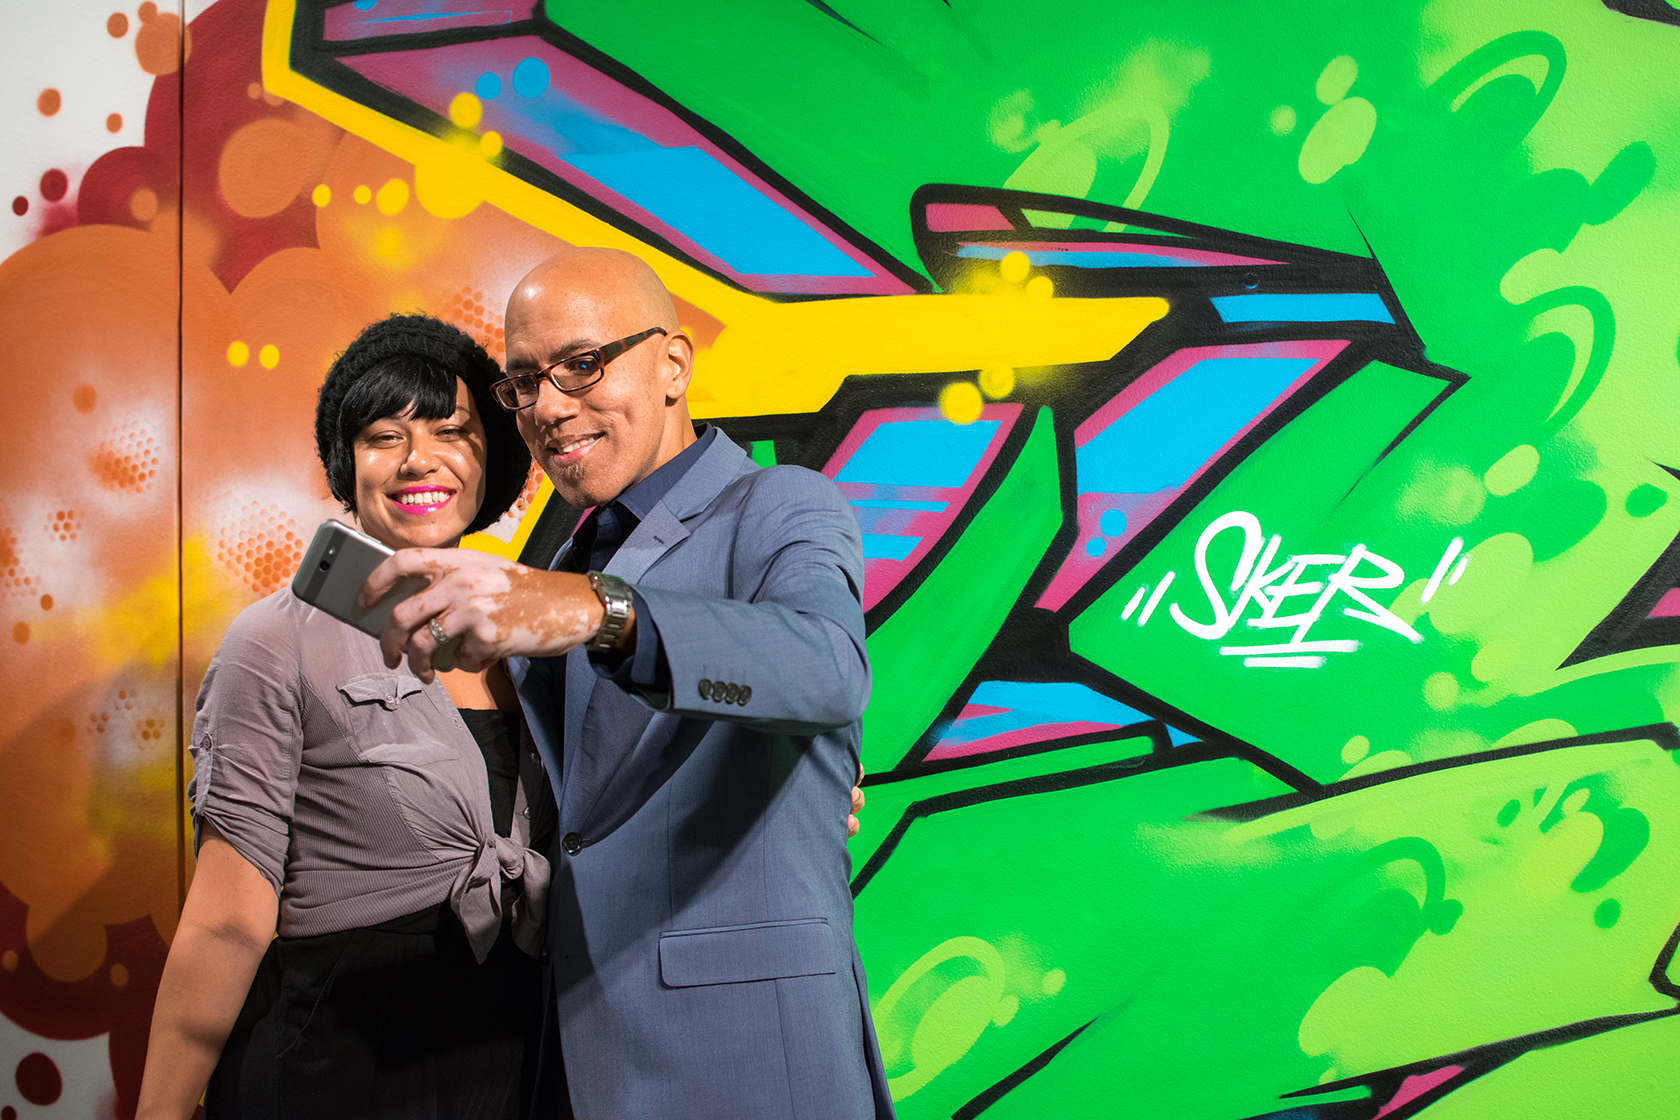 Two people take a selfie in front of a brightly colored mural